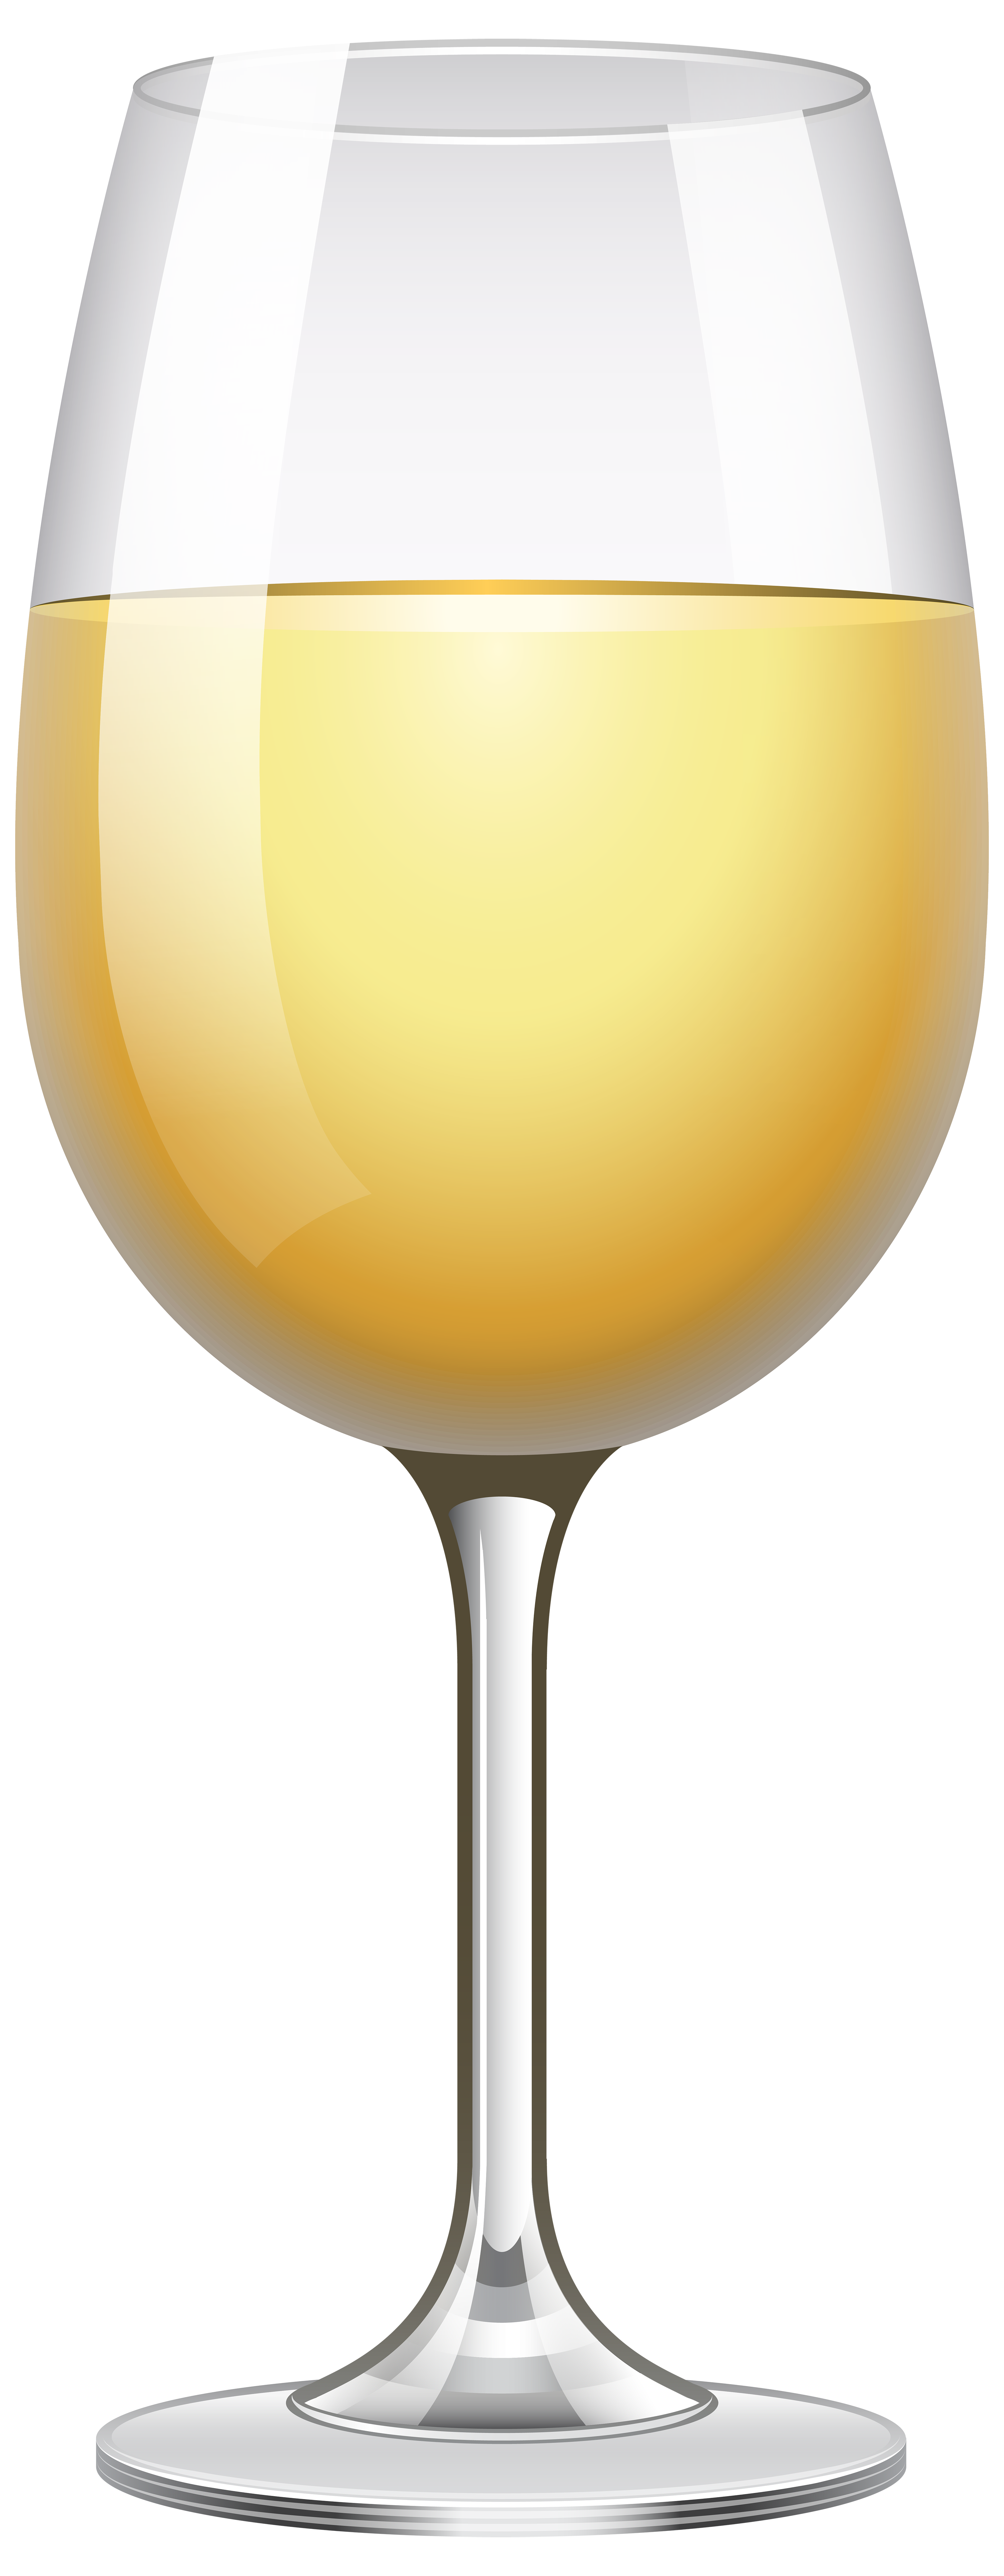 Clip art glass valuedirectories. Drinking clipart cup wine